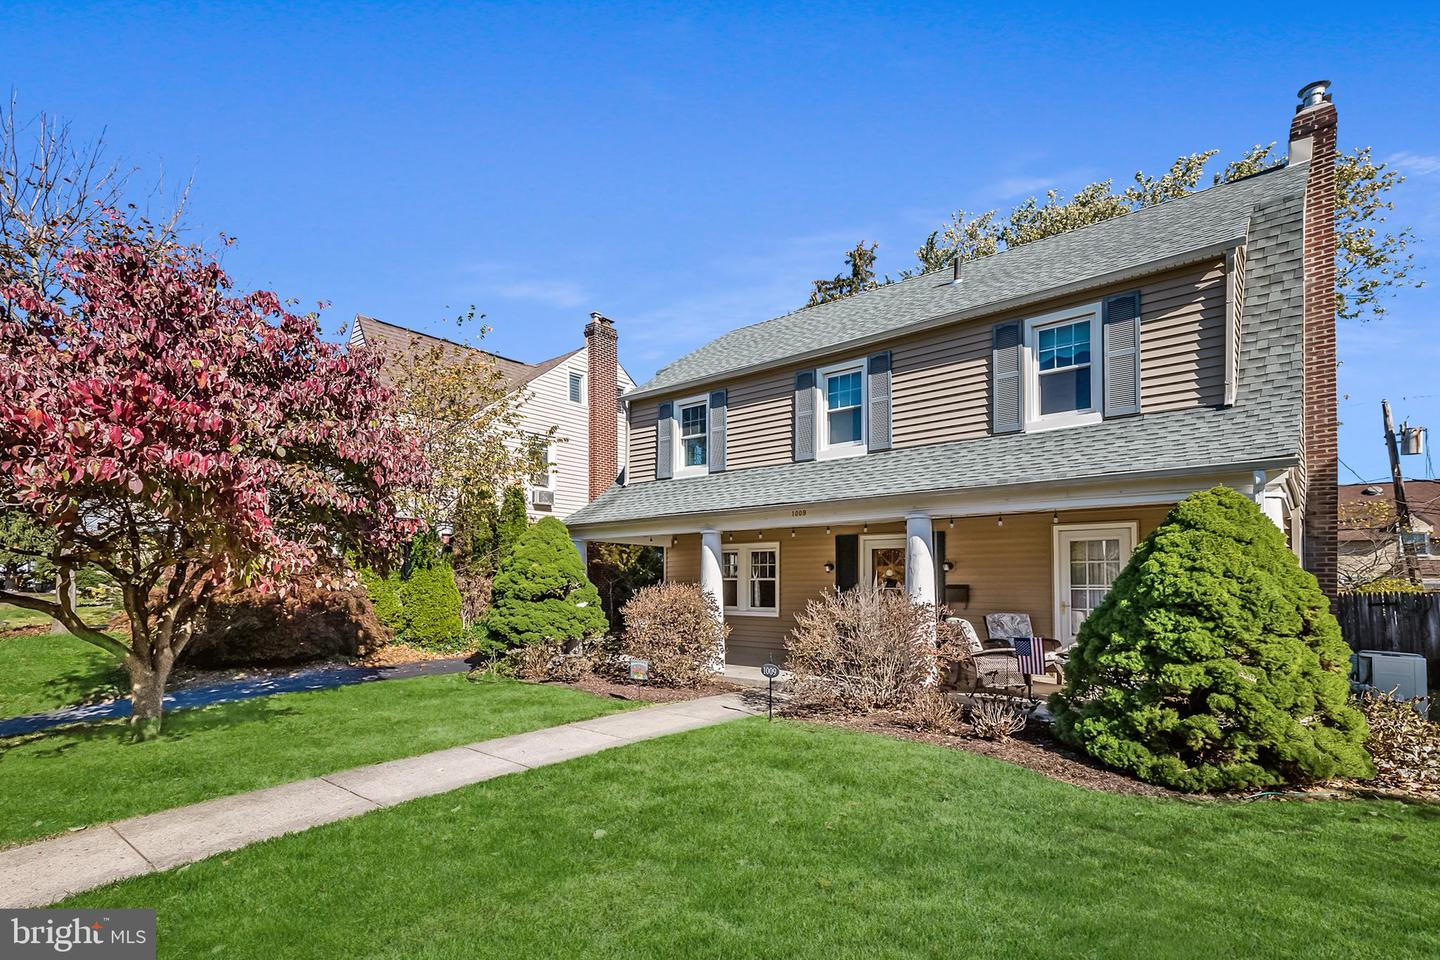 1009 Morgan Avenue Drexel Hill, PA 19026